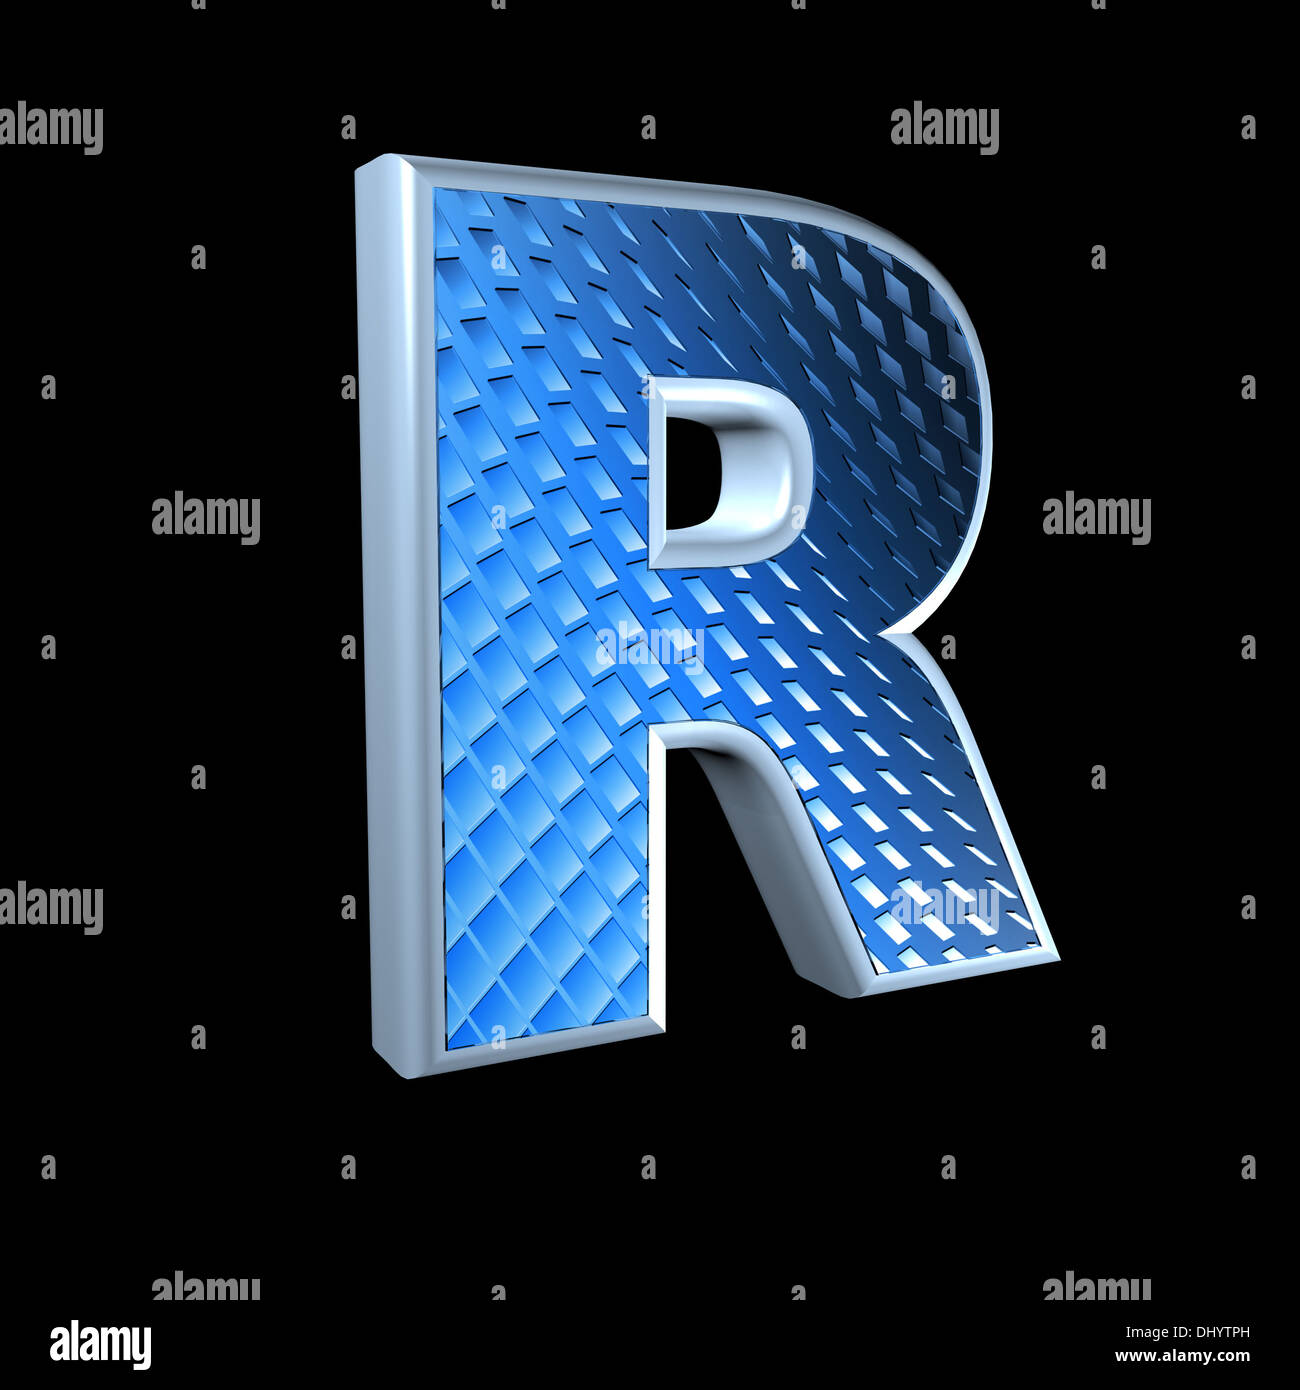 Abstract 3d letter with blue pattern texture r stock photo abstract 3d letter with blue pattern texture r thecheapjerseys Image collections